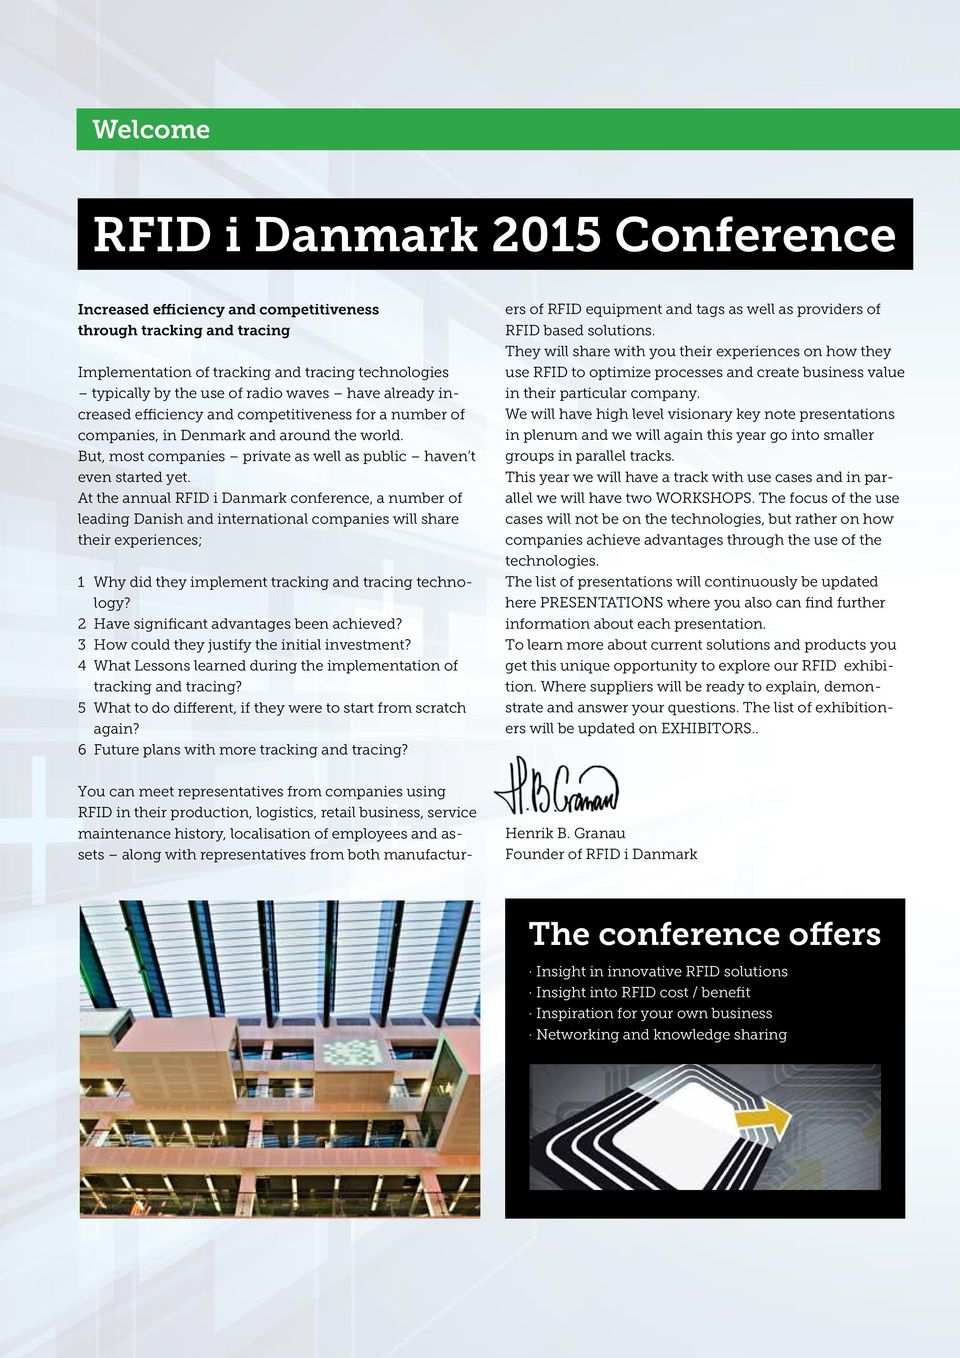 At the annual RFID i Danmark conference, a number of leading Danish and international companies will share their experiences; 1 Why did they implement tracking and tracing technology?